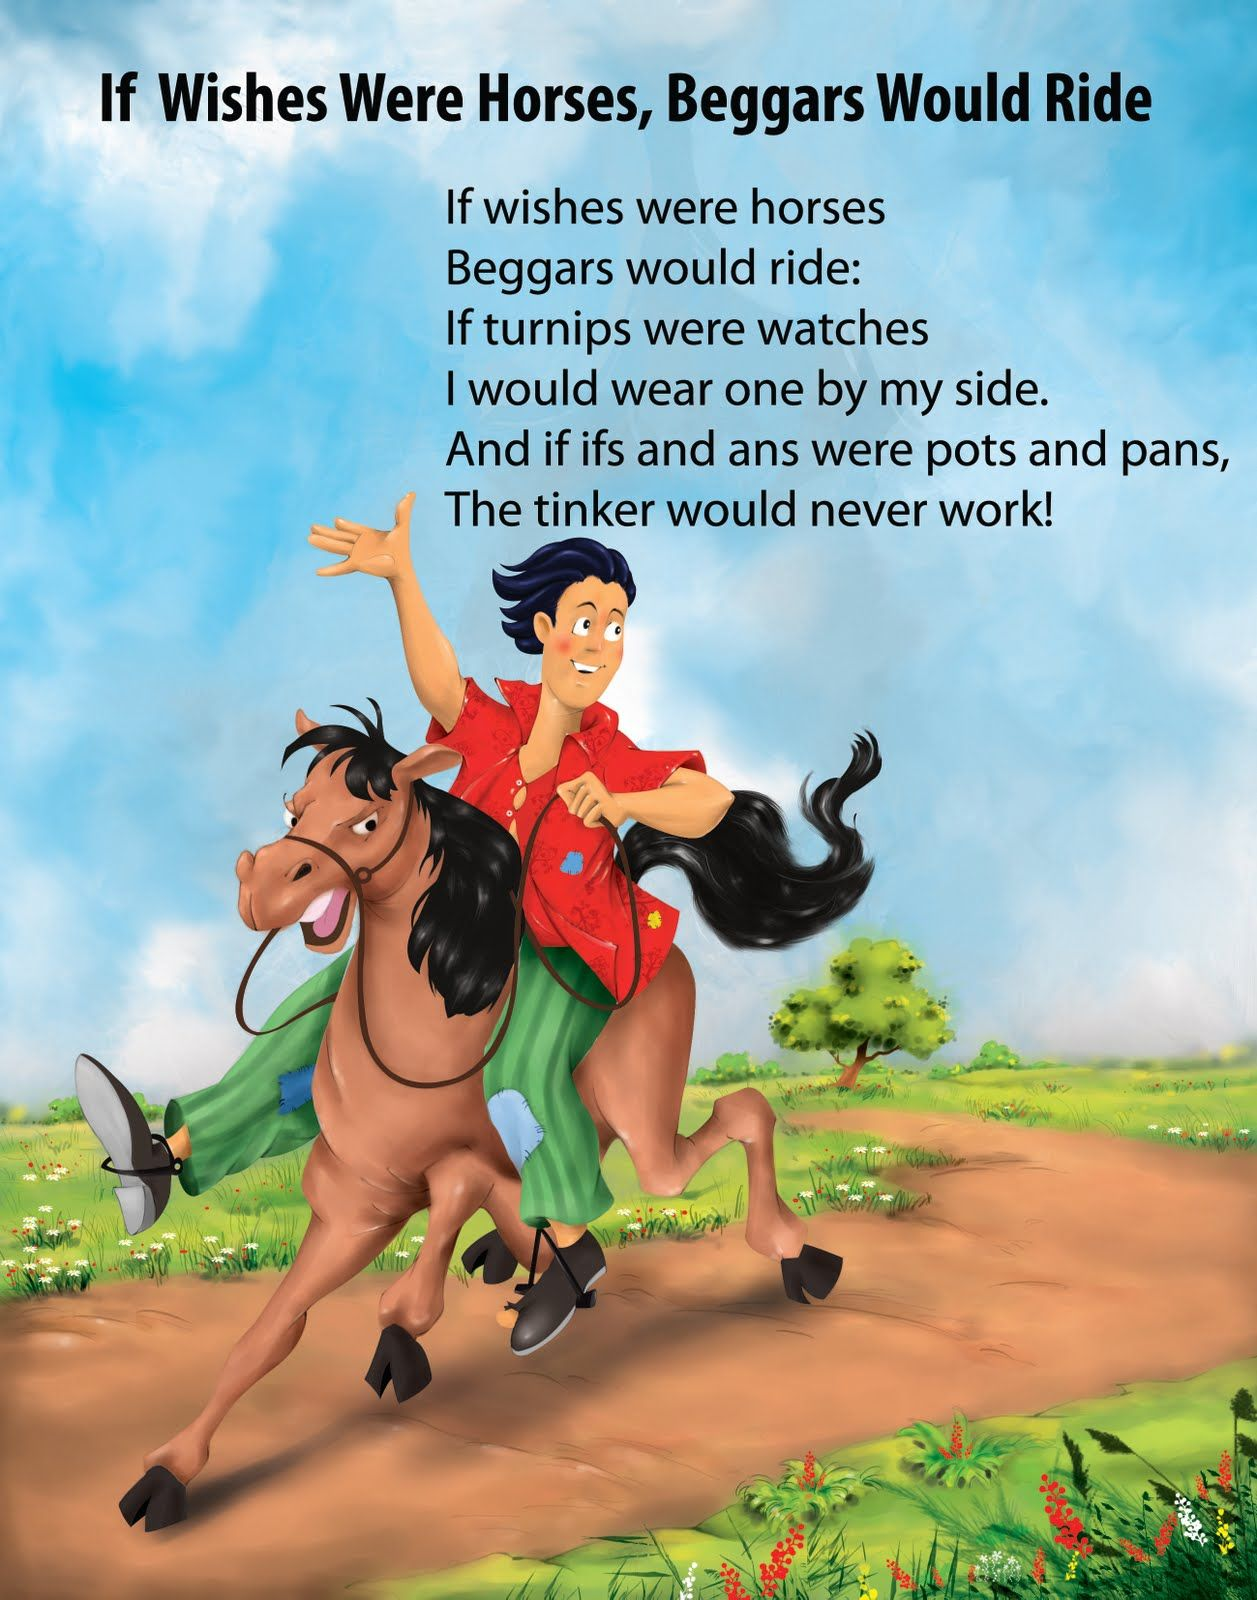 if wishes were horses poor men would ride - Google Search